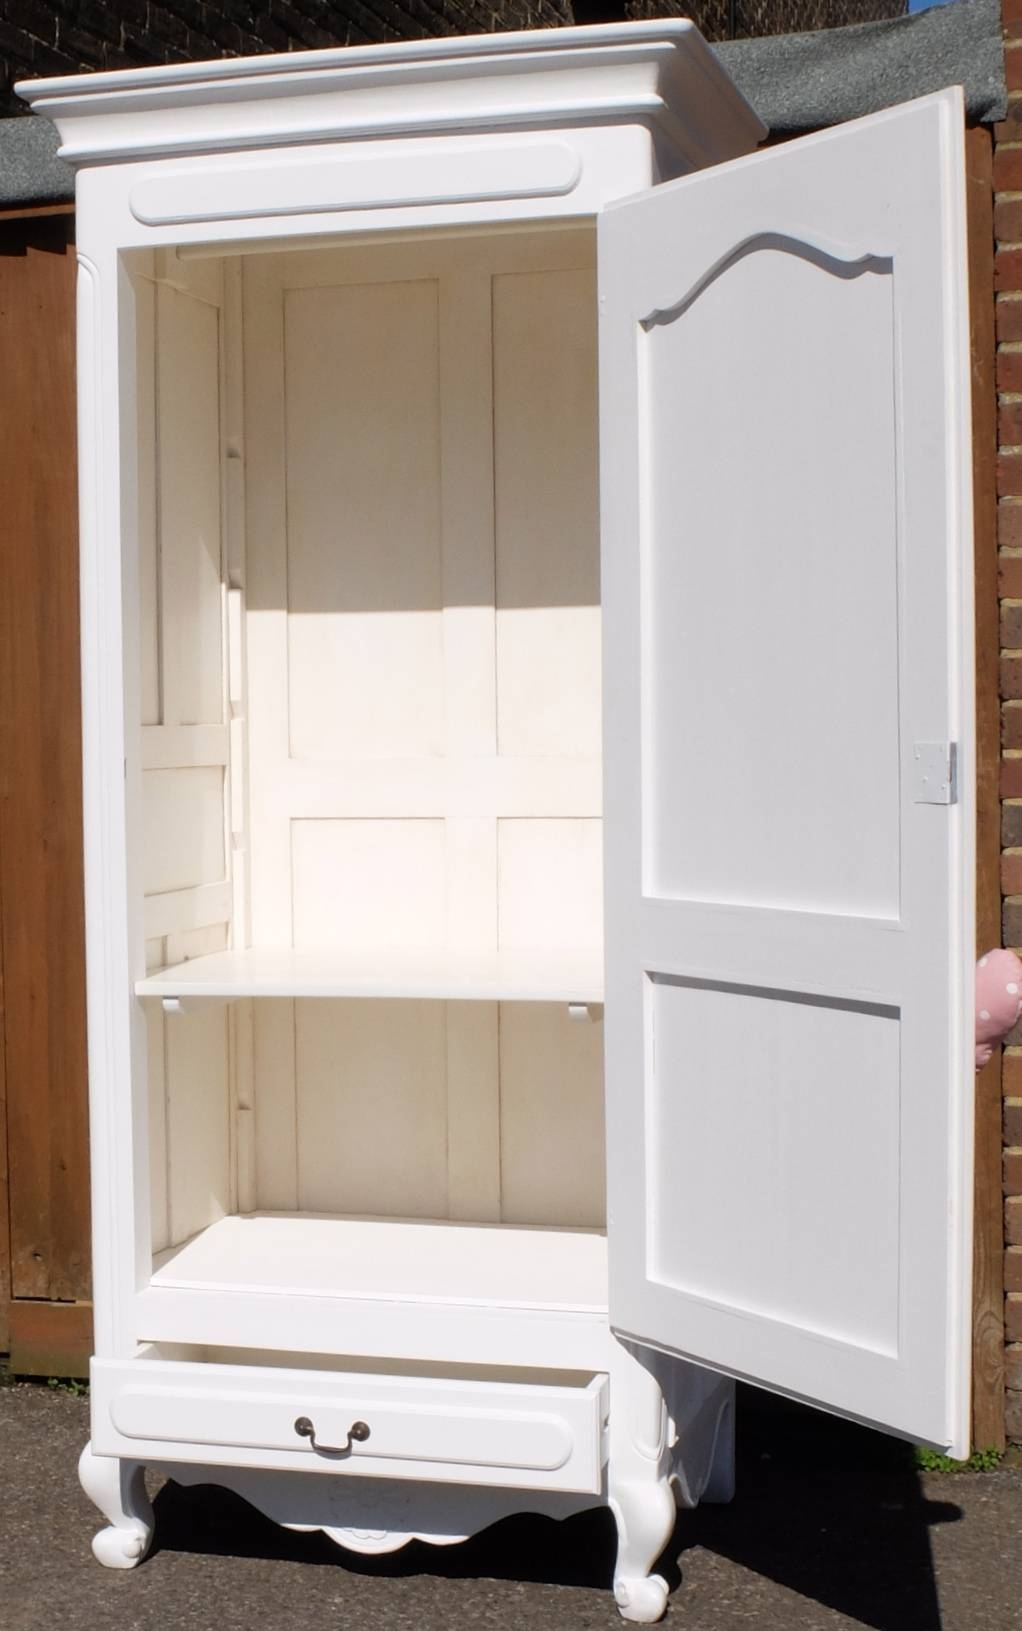 White French Style Single Door Wardrobe - Home Sweet Homehome for Single White Wardrobes (Image 15 of 15)